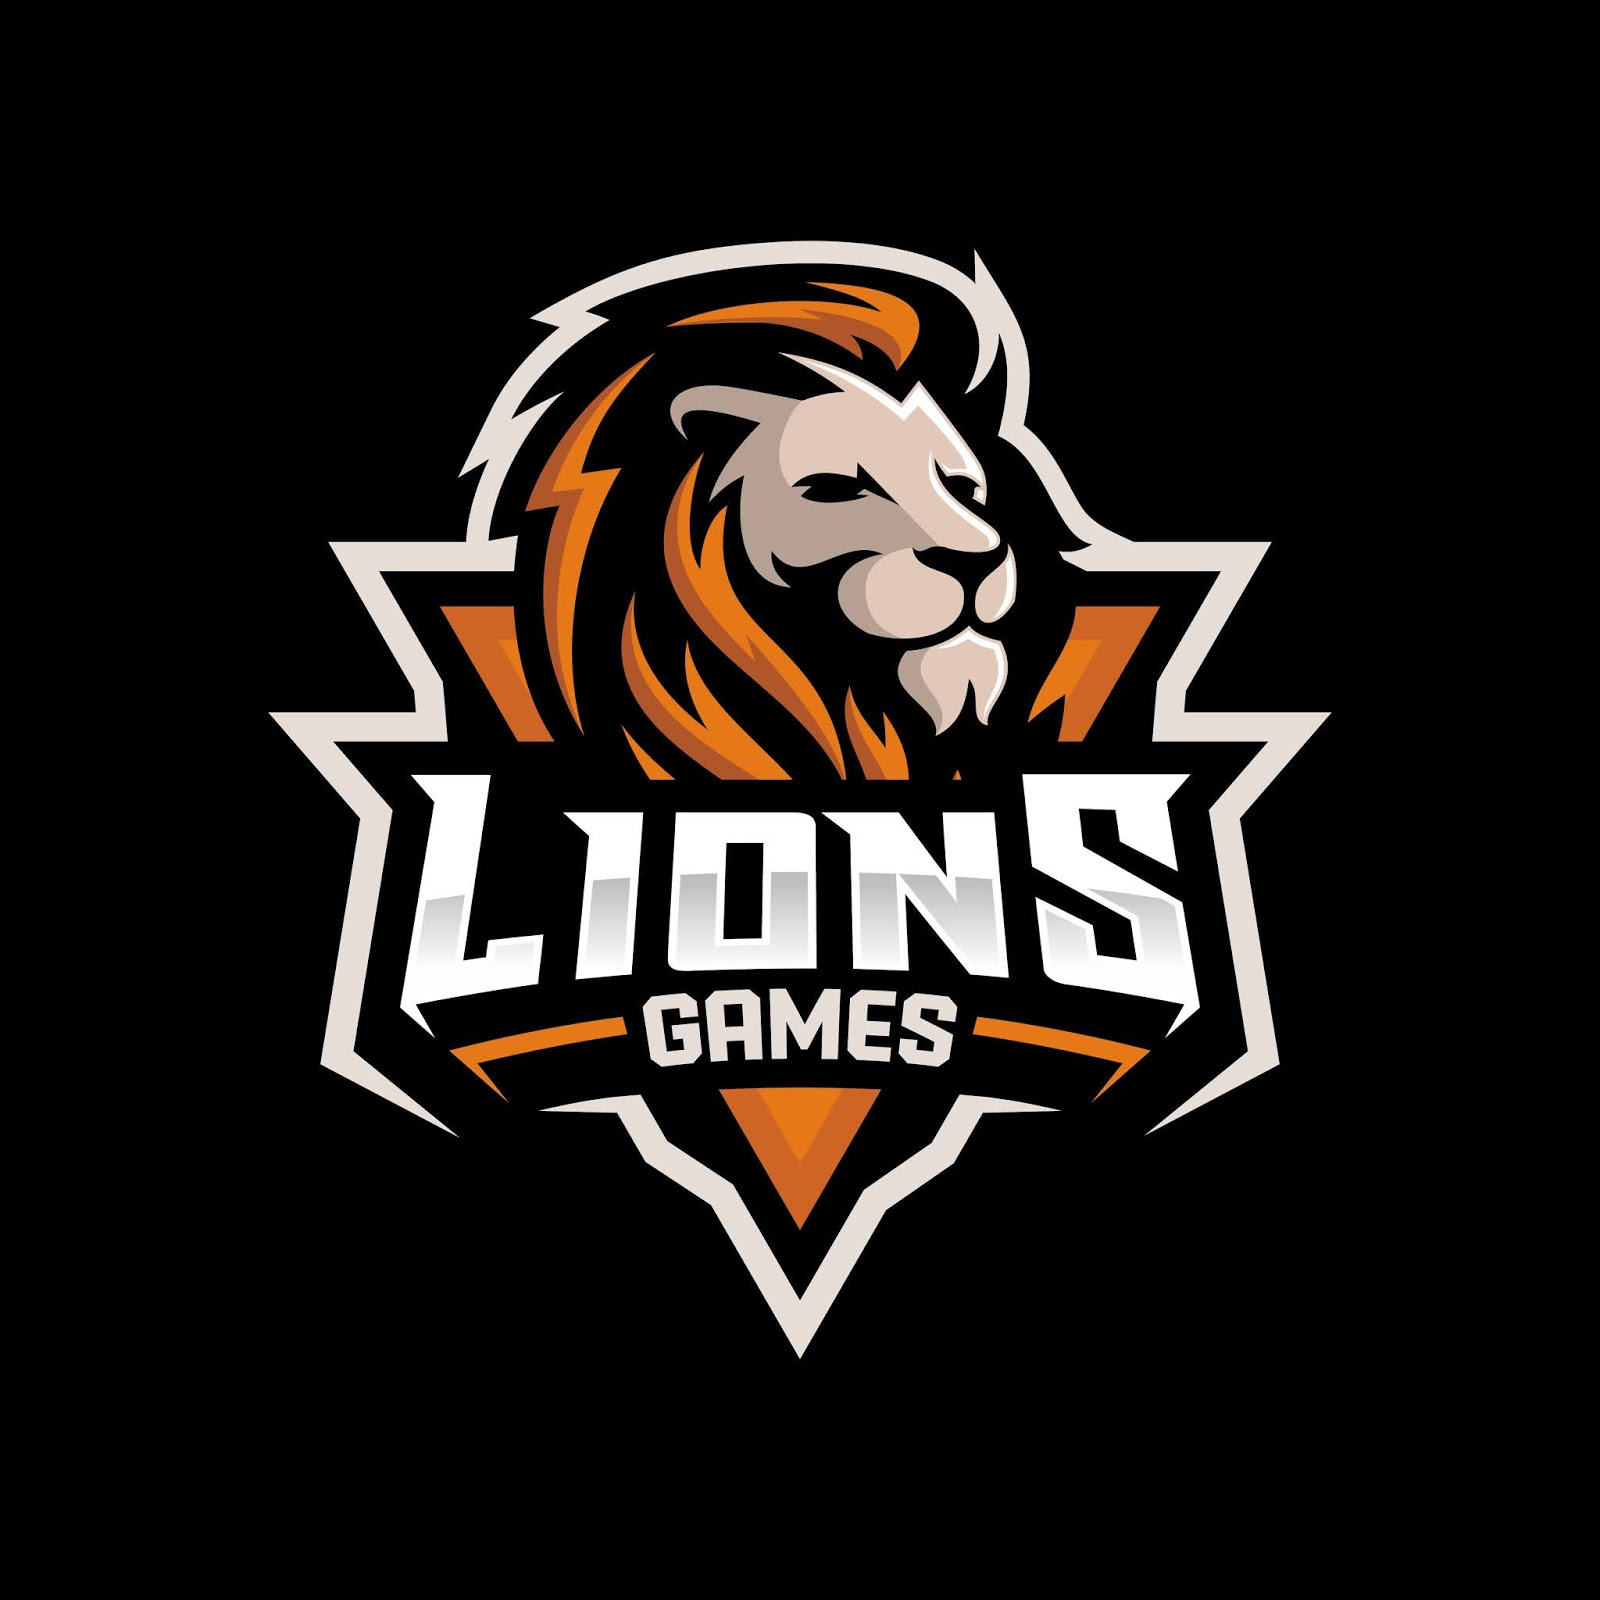 Lion Head Gaming Logo Esport Sport Free Download Vector CDR, AI, EPS and PNG Formats